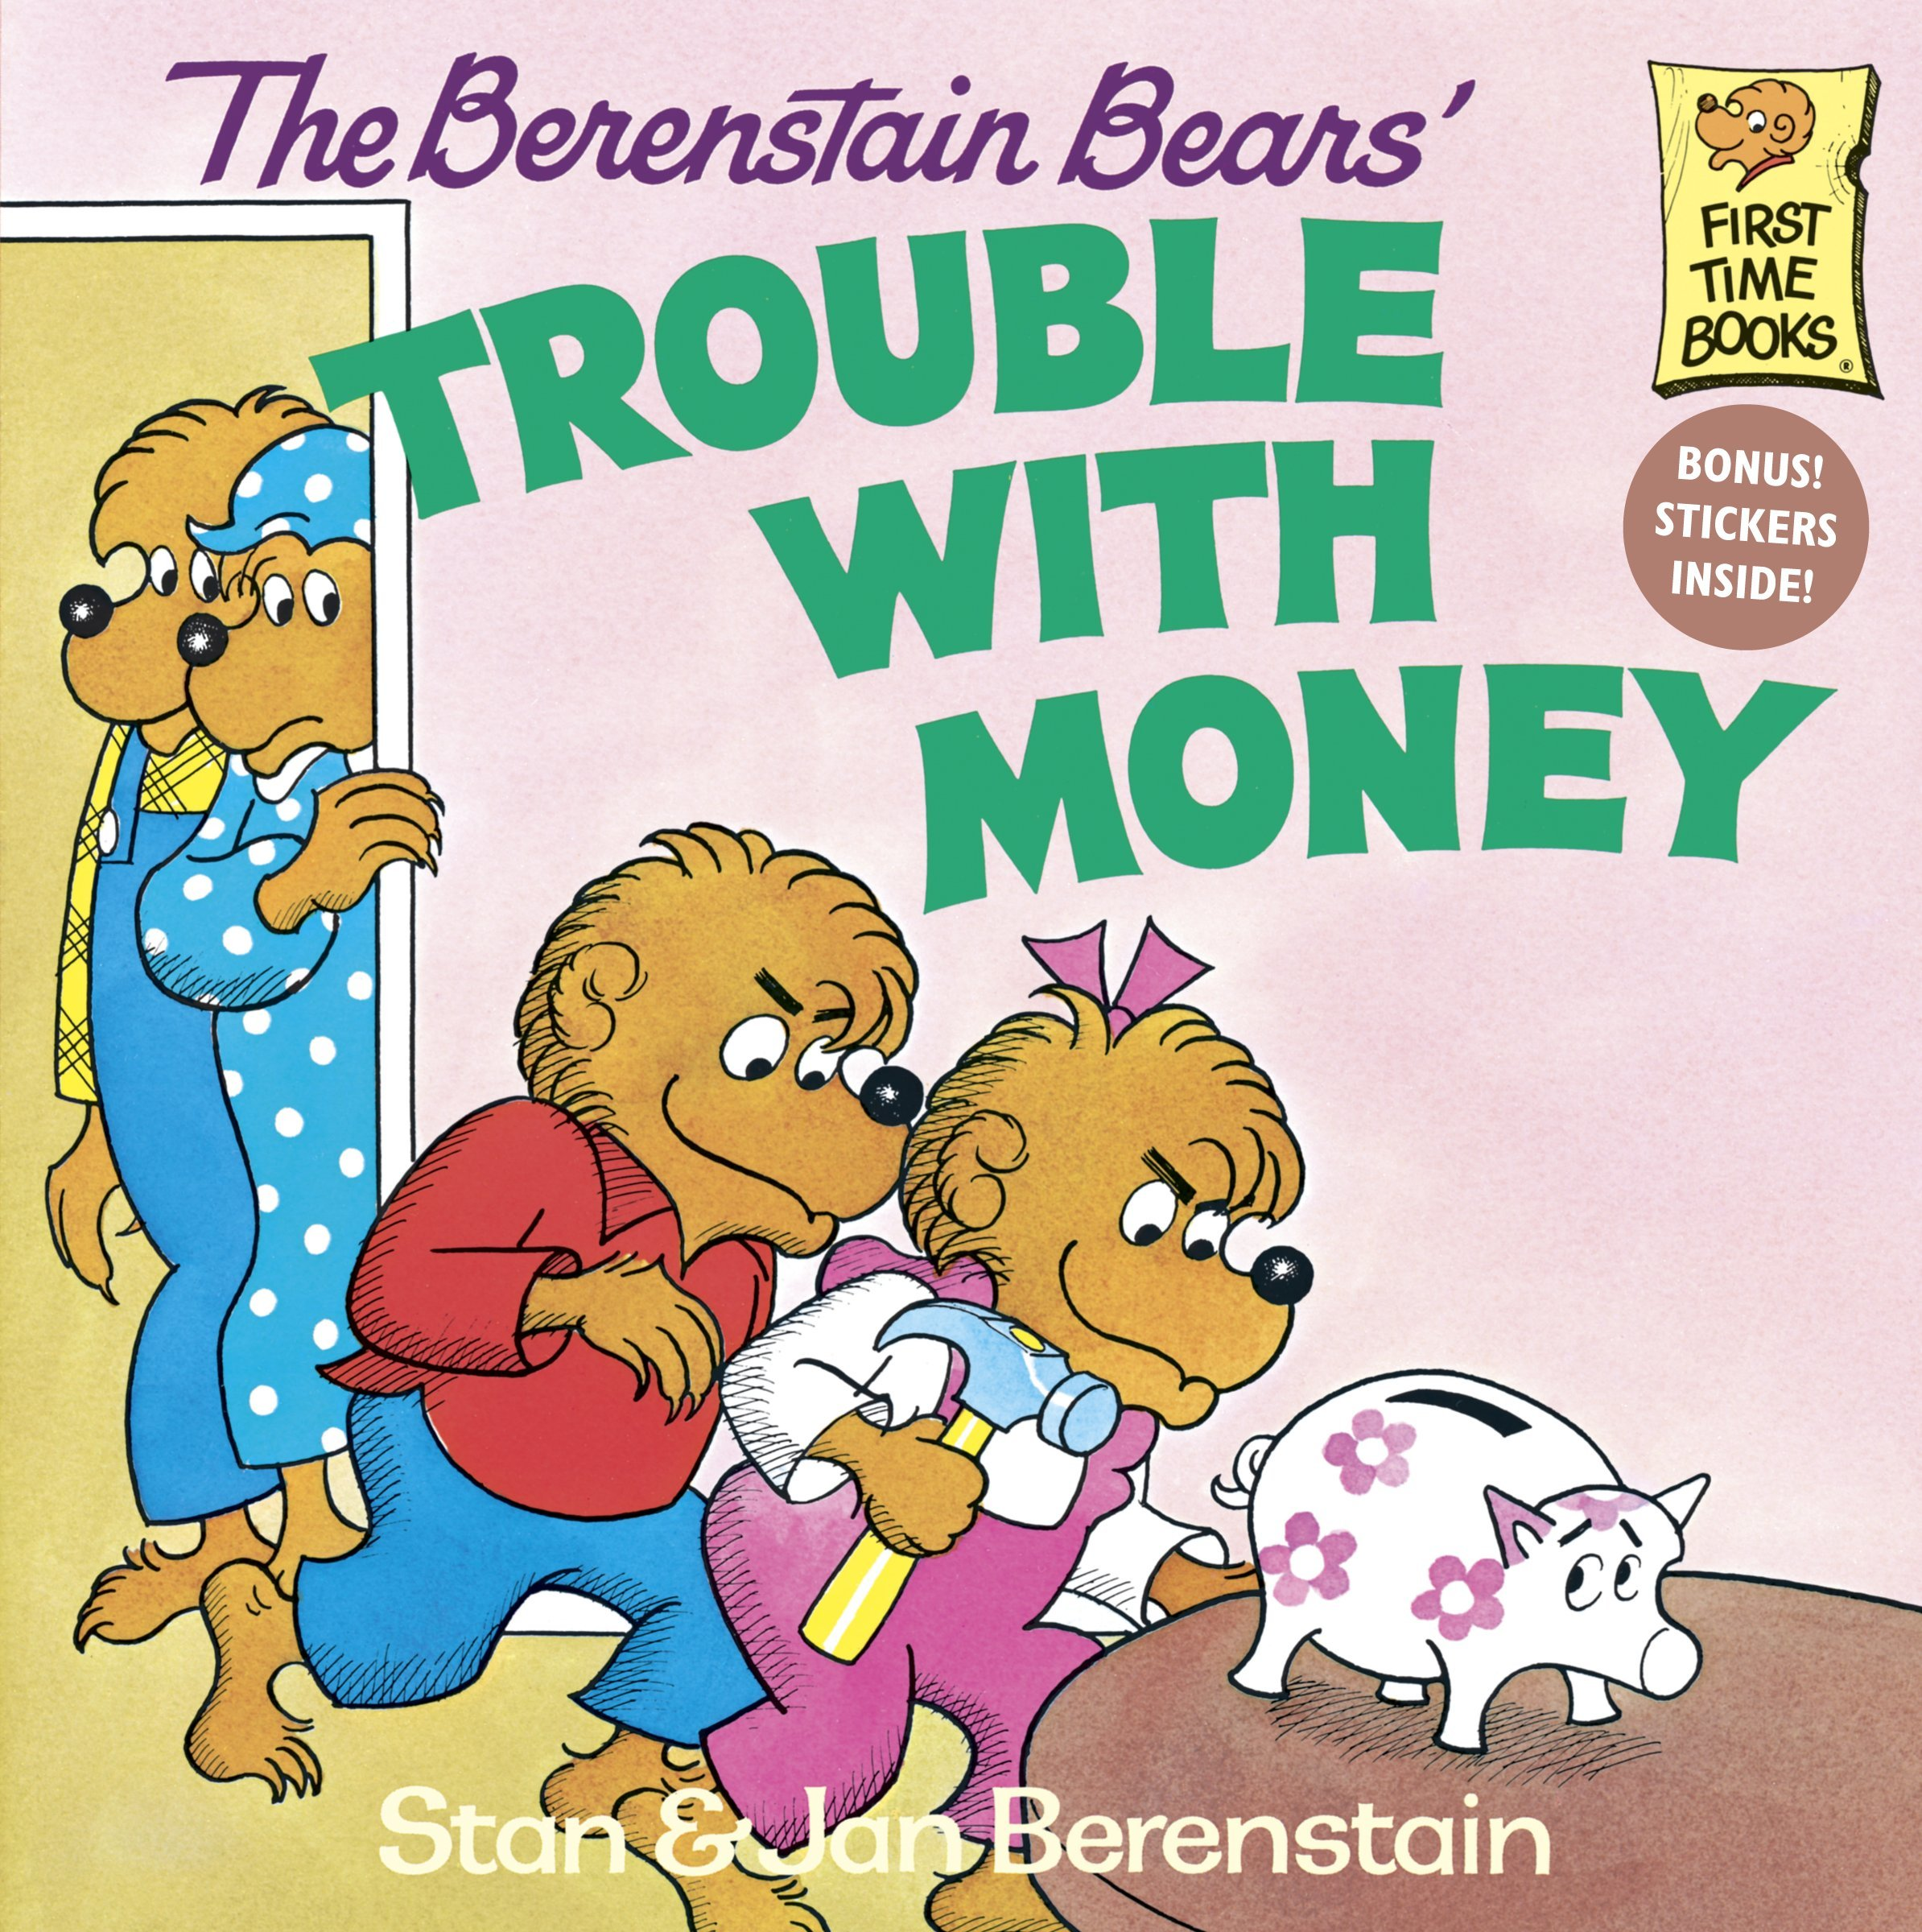 The berenstain bears trouble with money stan berenstain jan berenstain 8601421775328 amazon com books